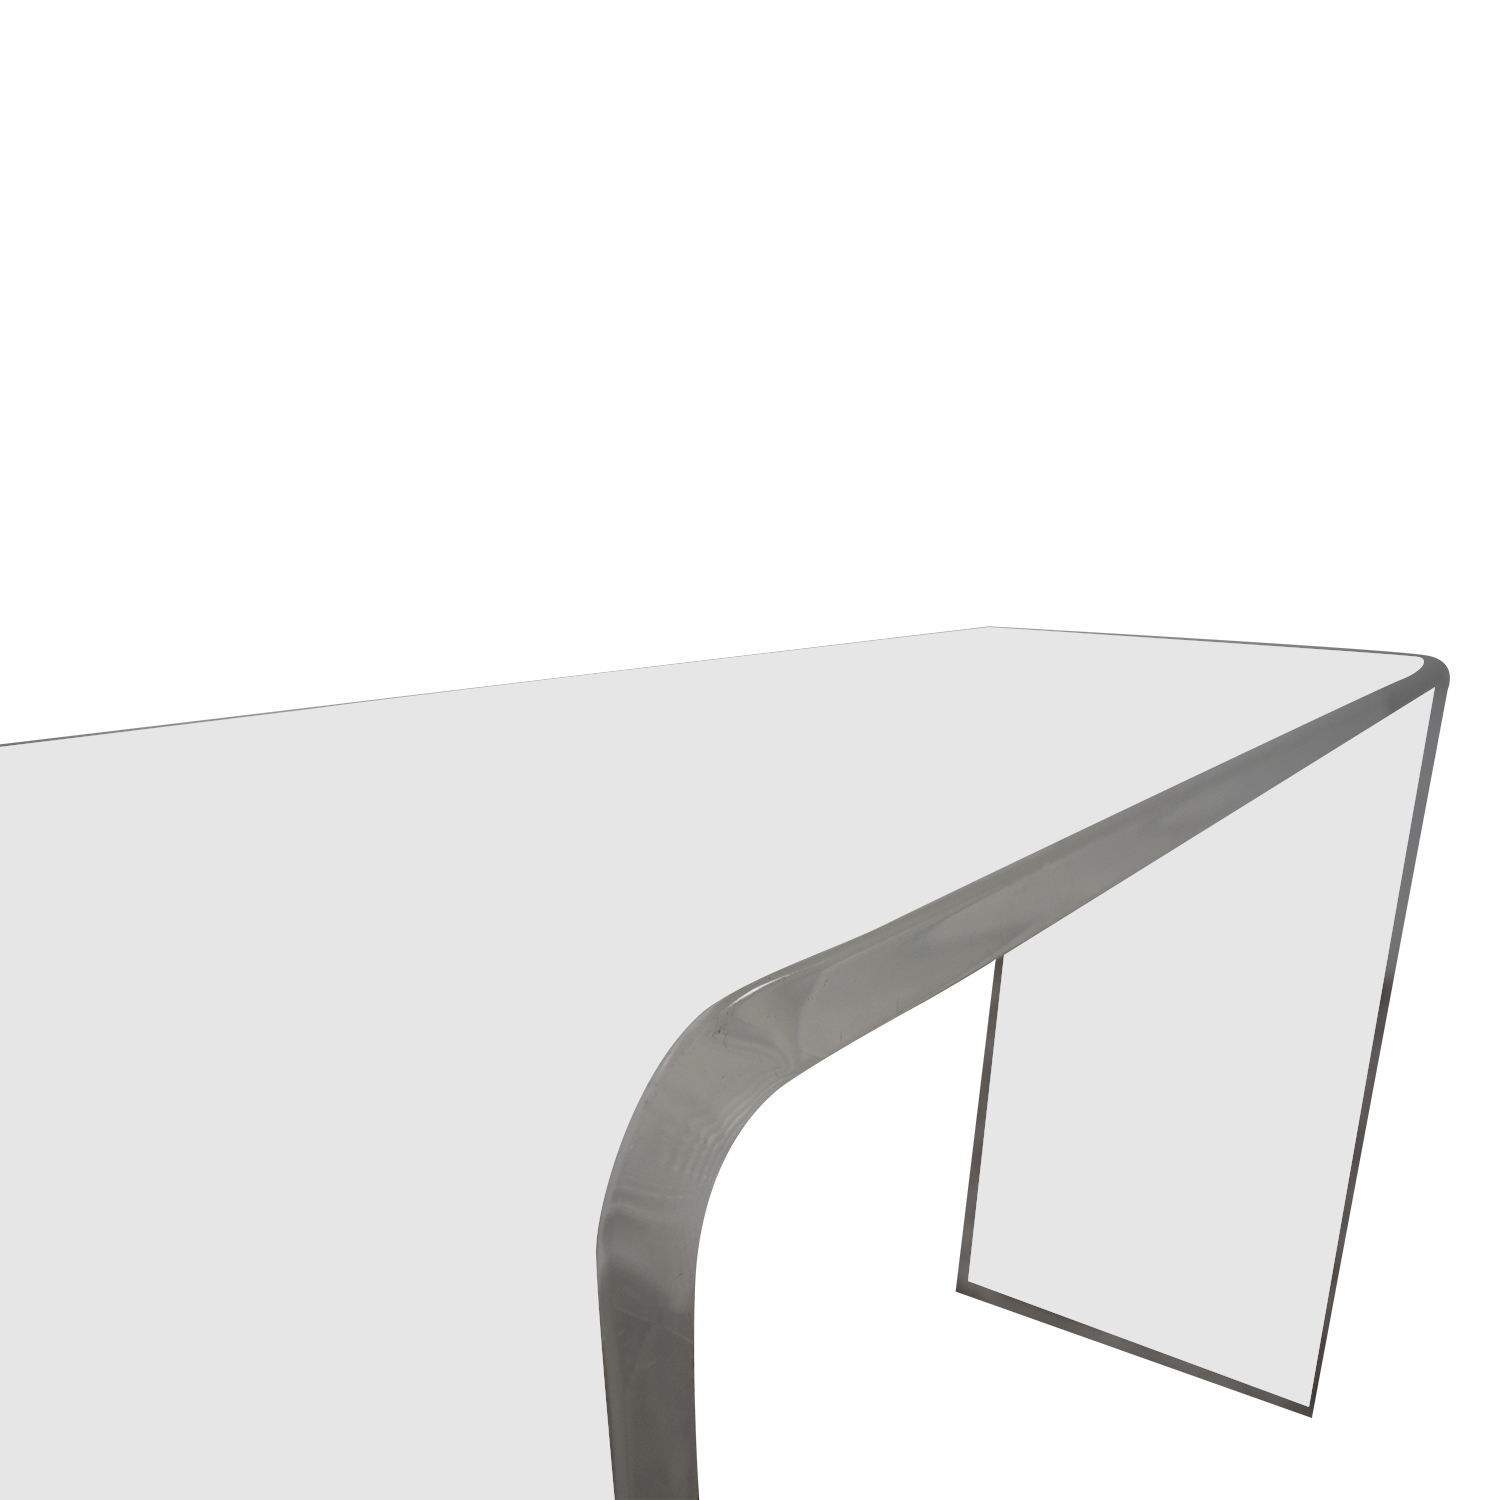 Outstanding 59 Off Cb2 Cb2 Peekaboo Acrylic Console Table Tables Spiritservingveterans Wood Chair Design Ideas Spiritservingveteransorg